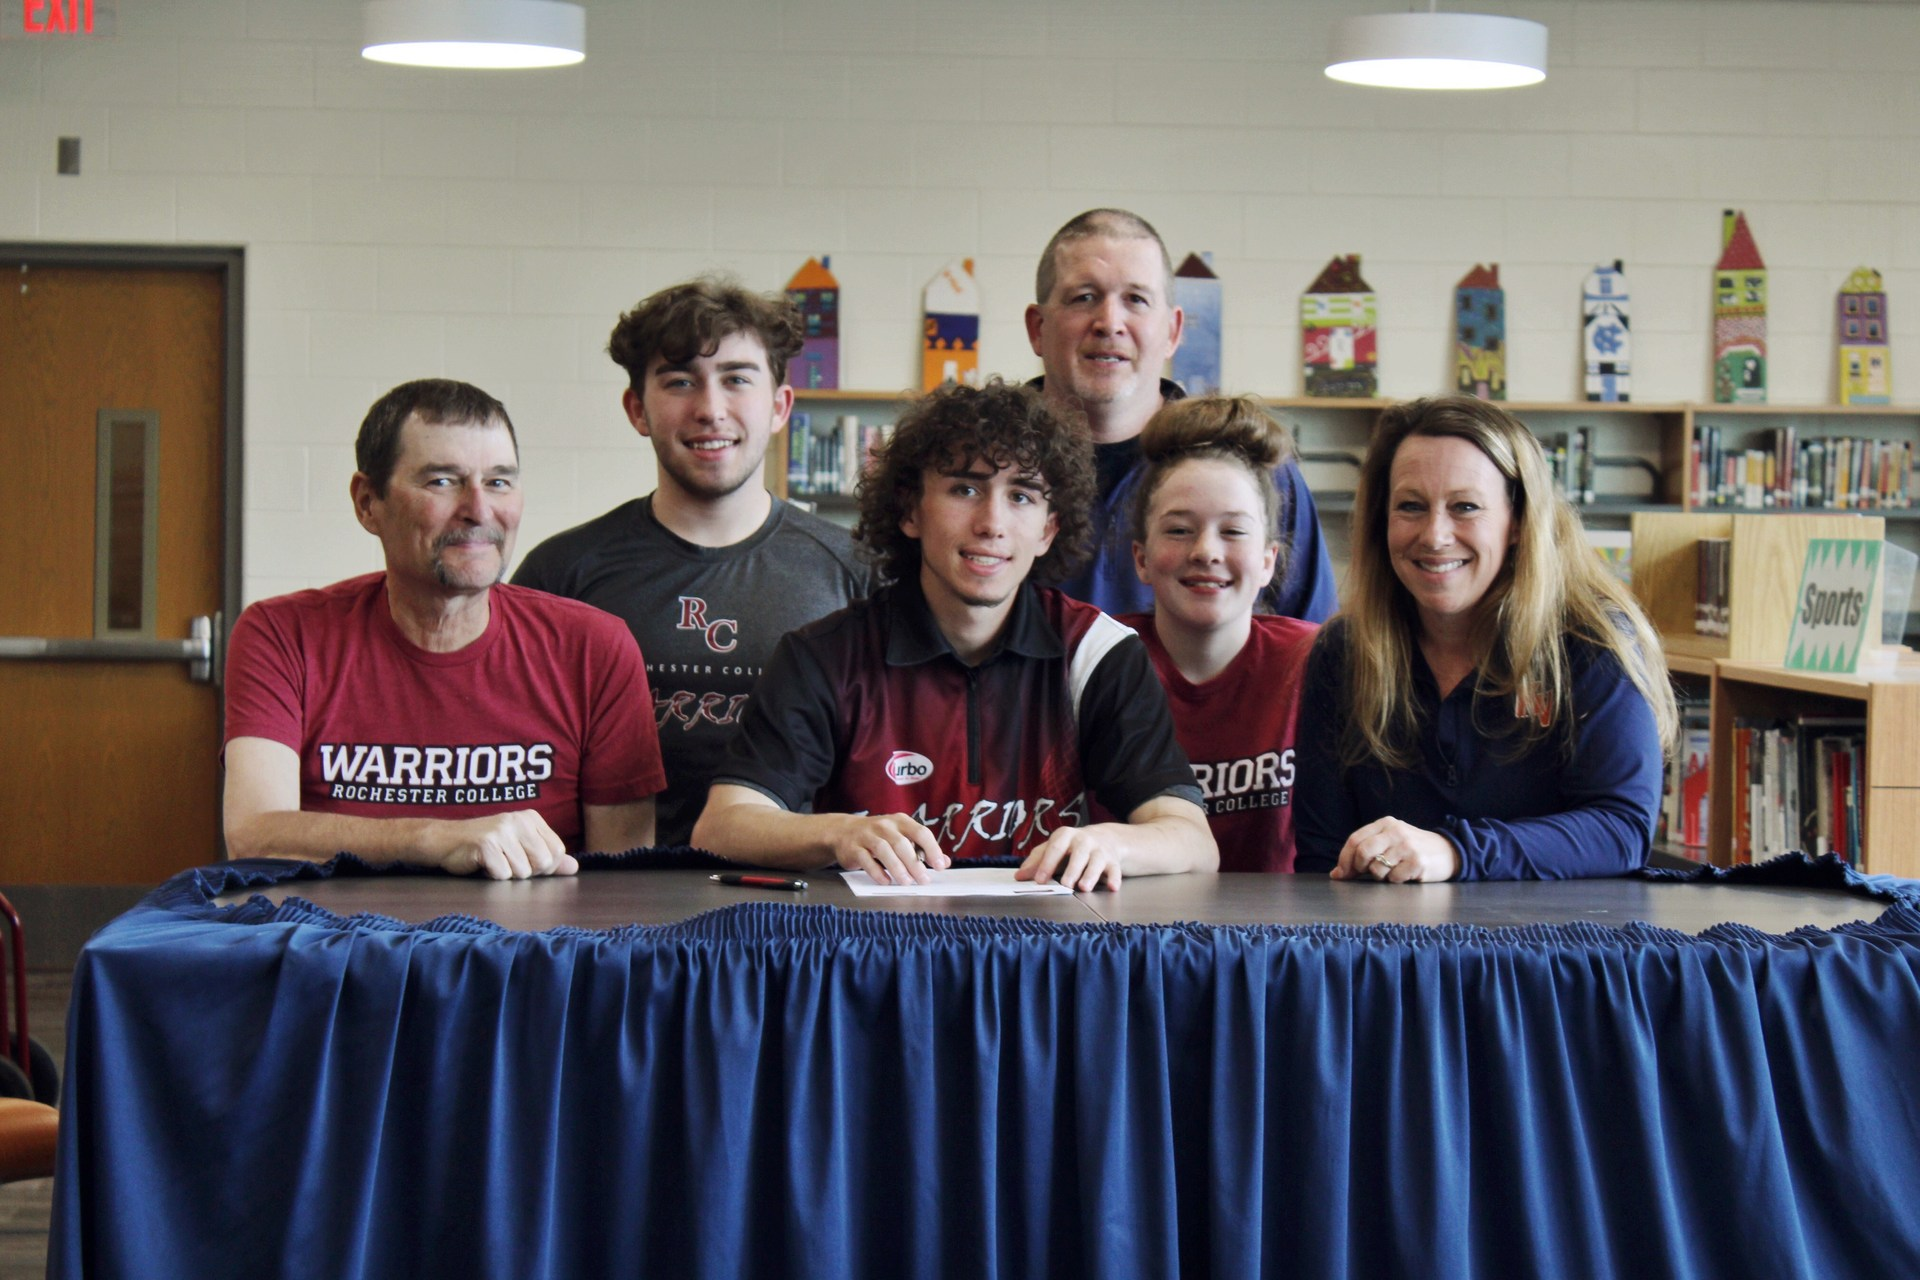 Zach Postma - Rochester College, Bowling Scholarship